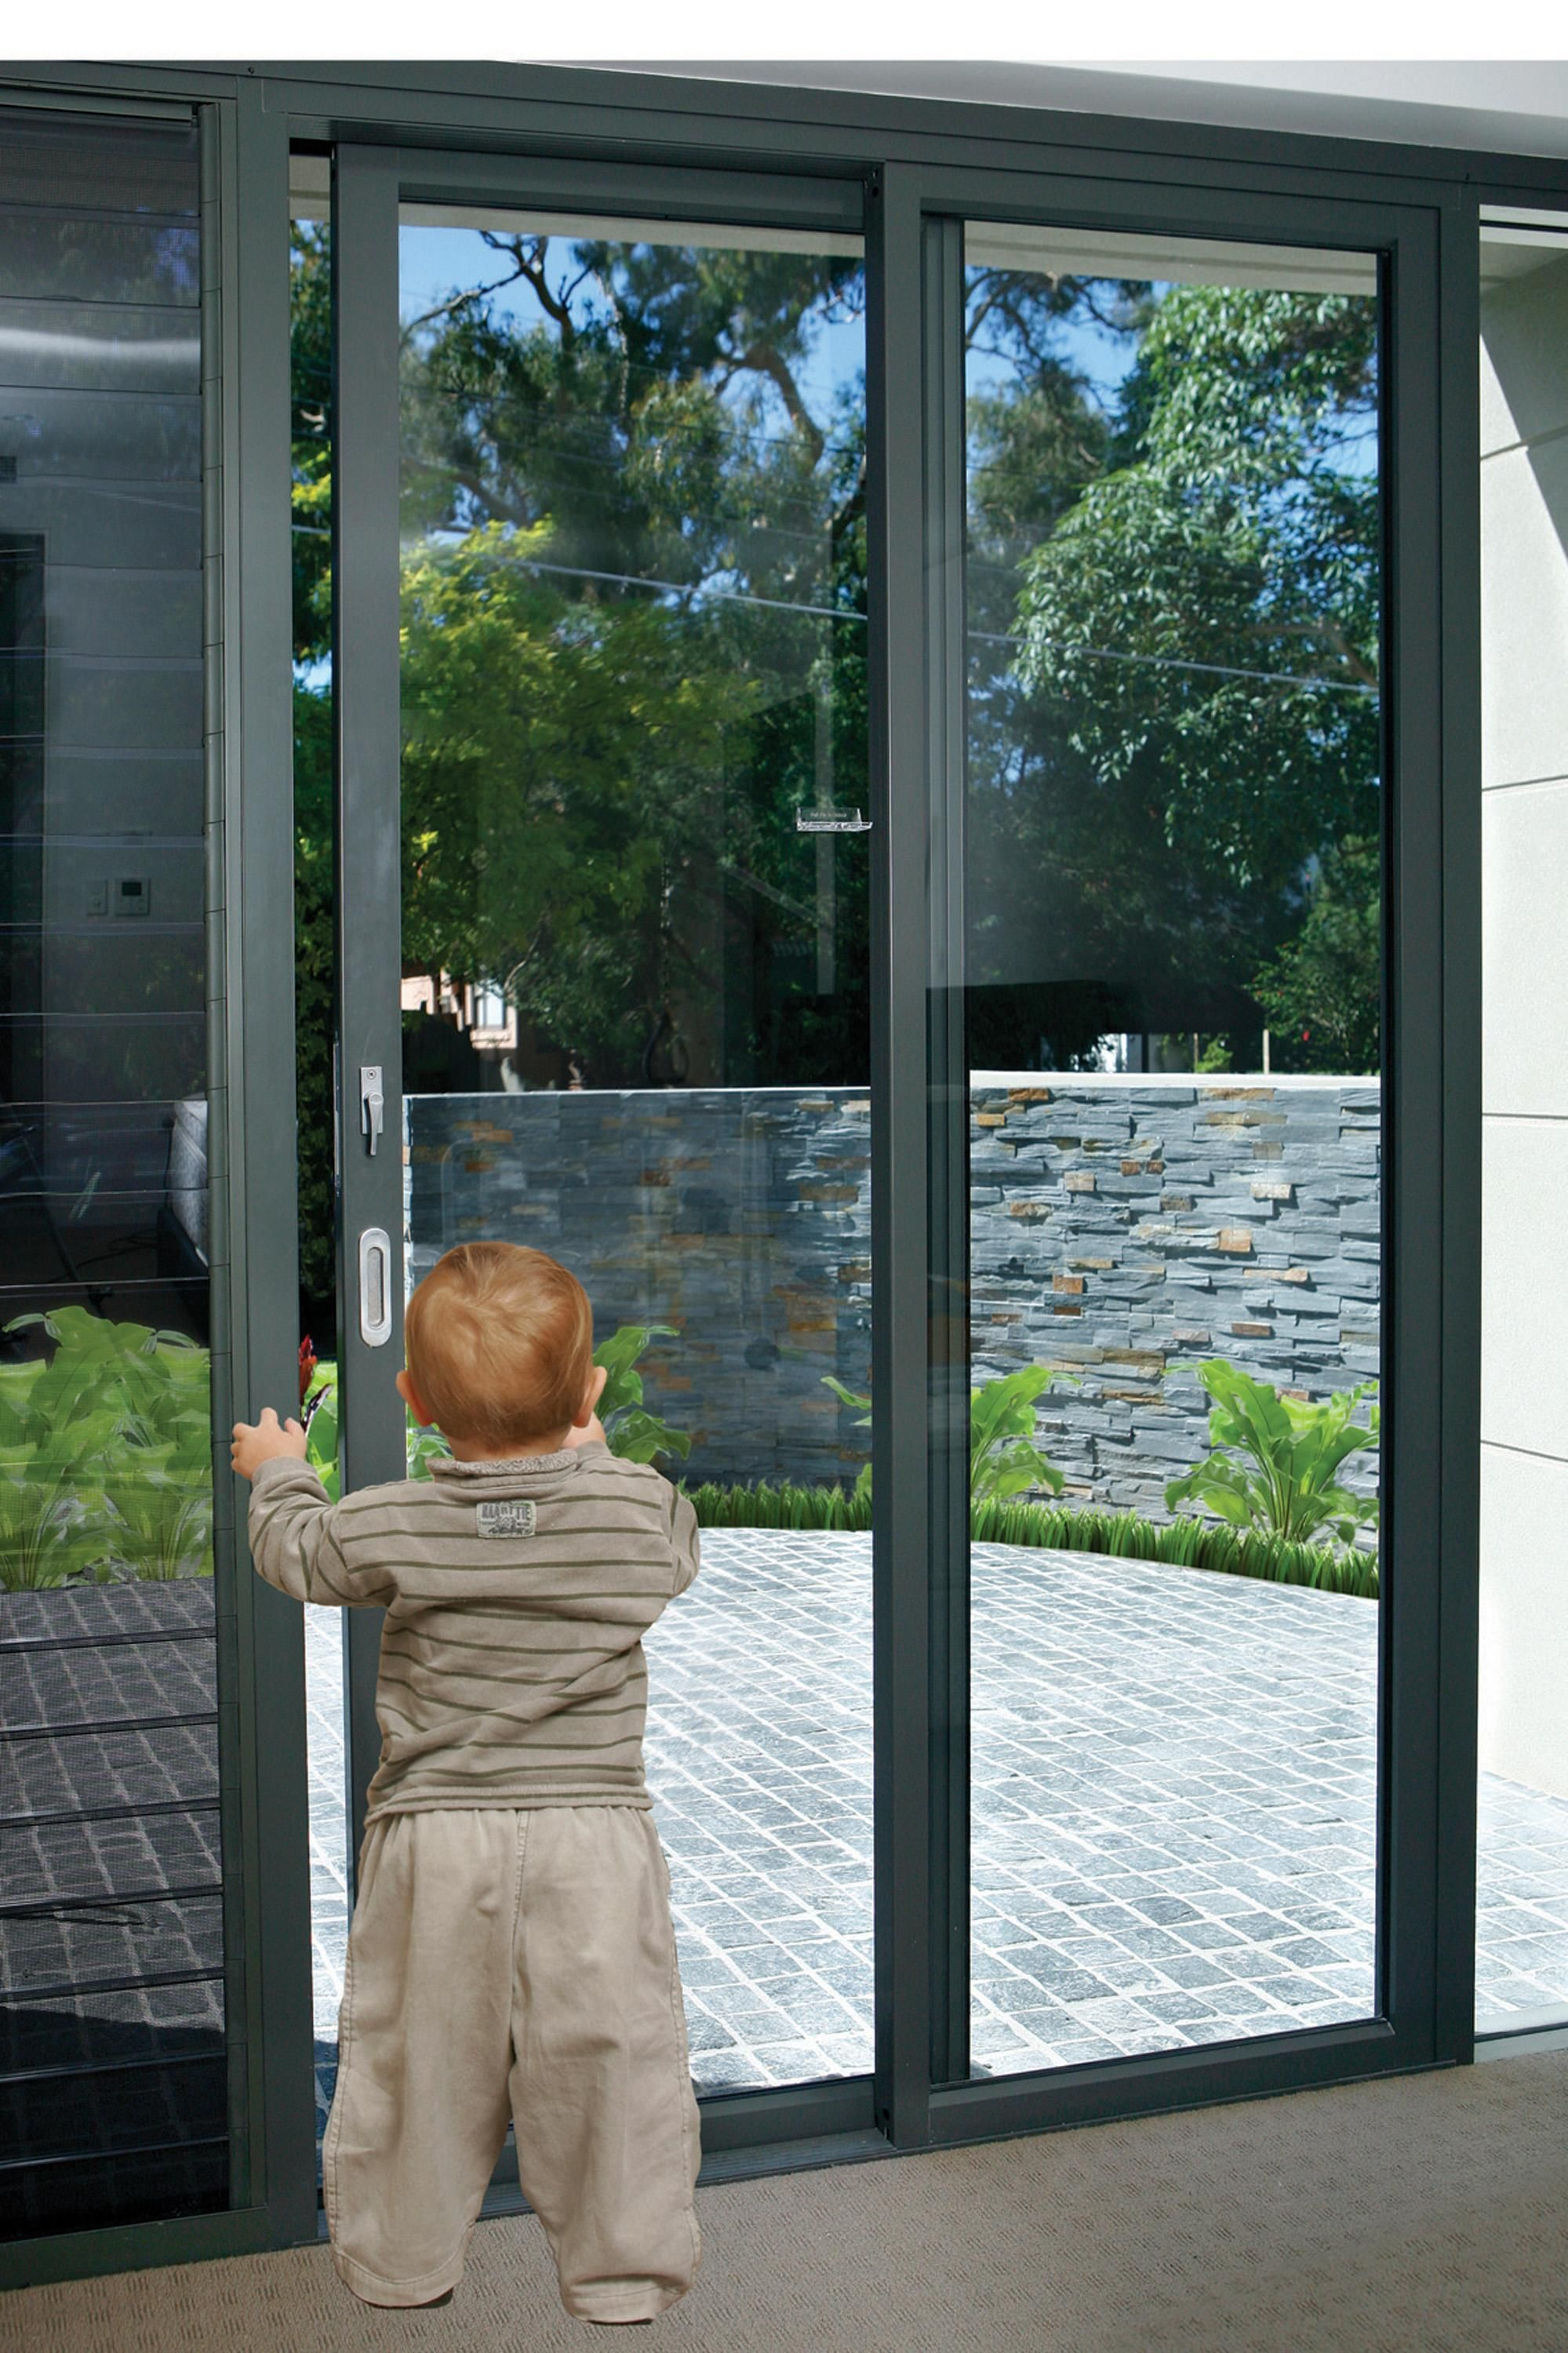 Padiolok helps you go out your patio door to play